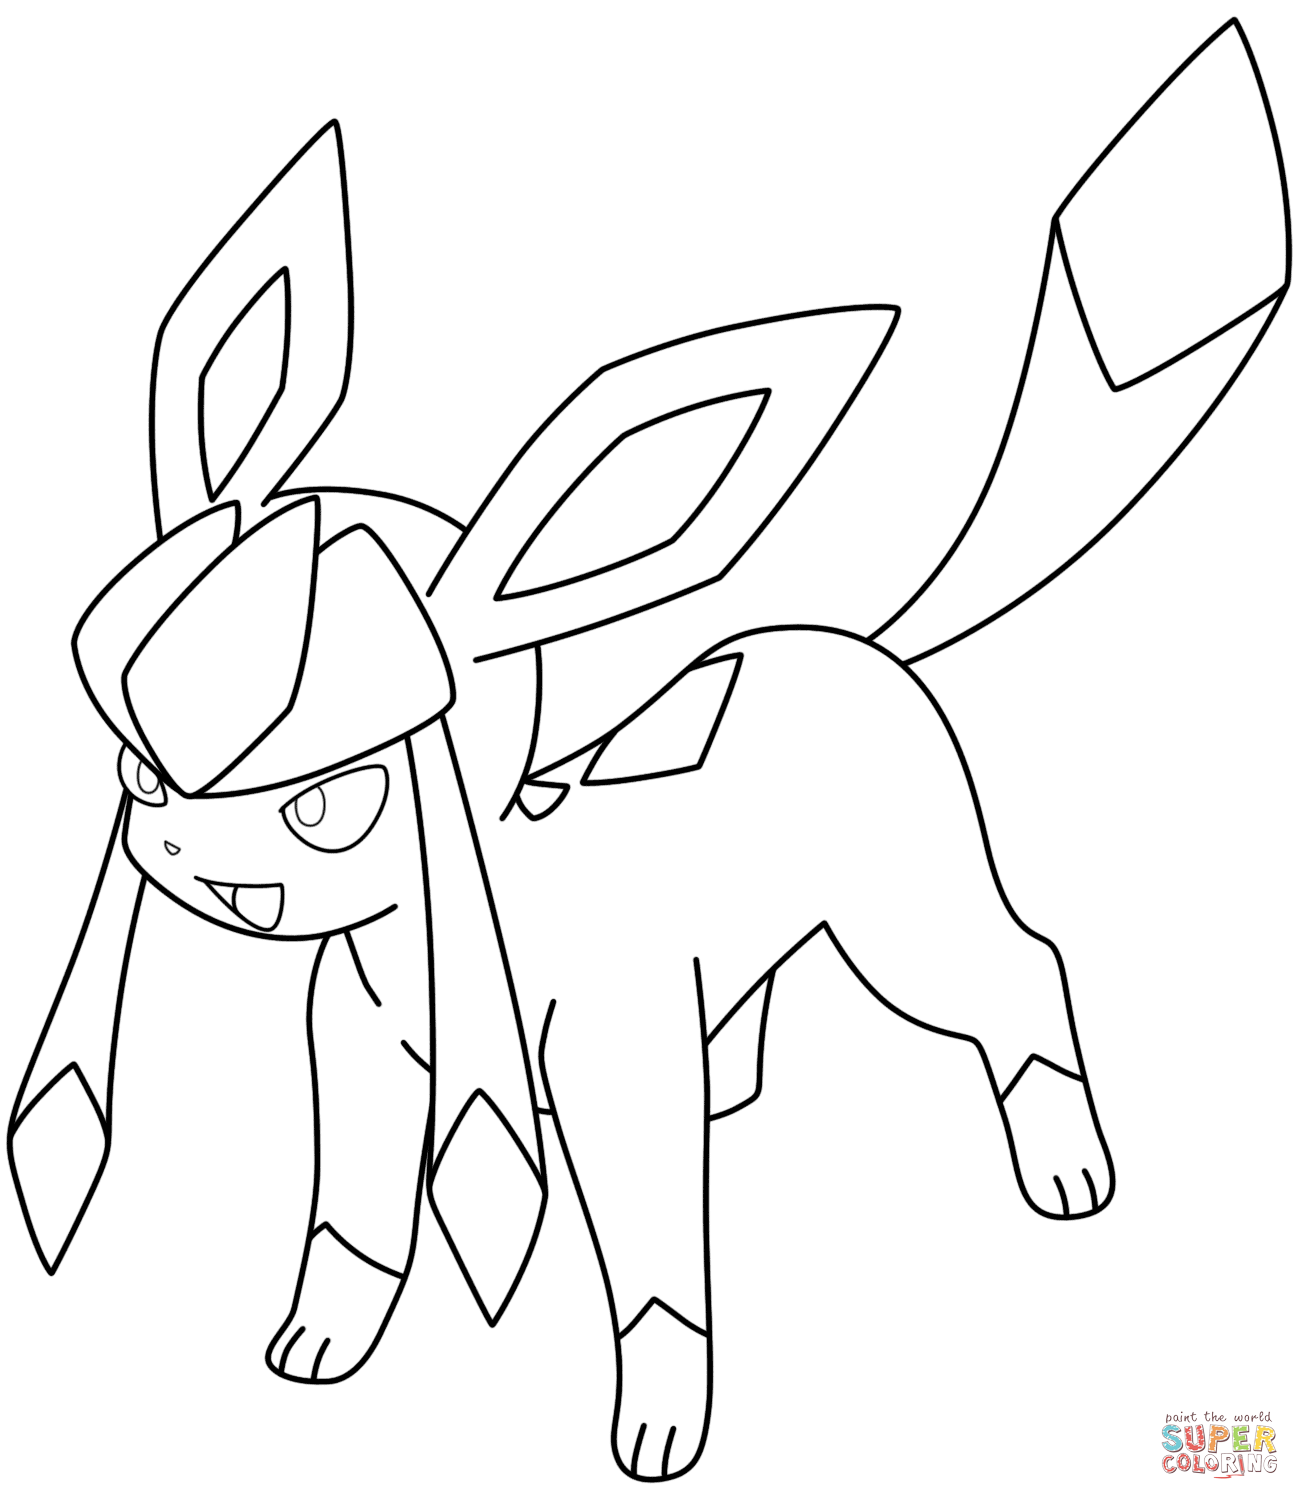 glaceon pokemon coloring page - Pokemon Coloring Pages